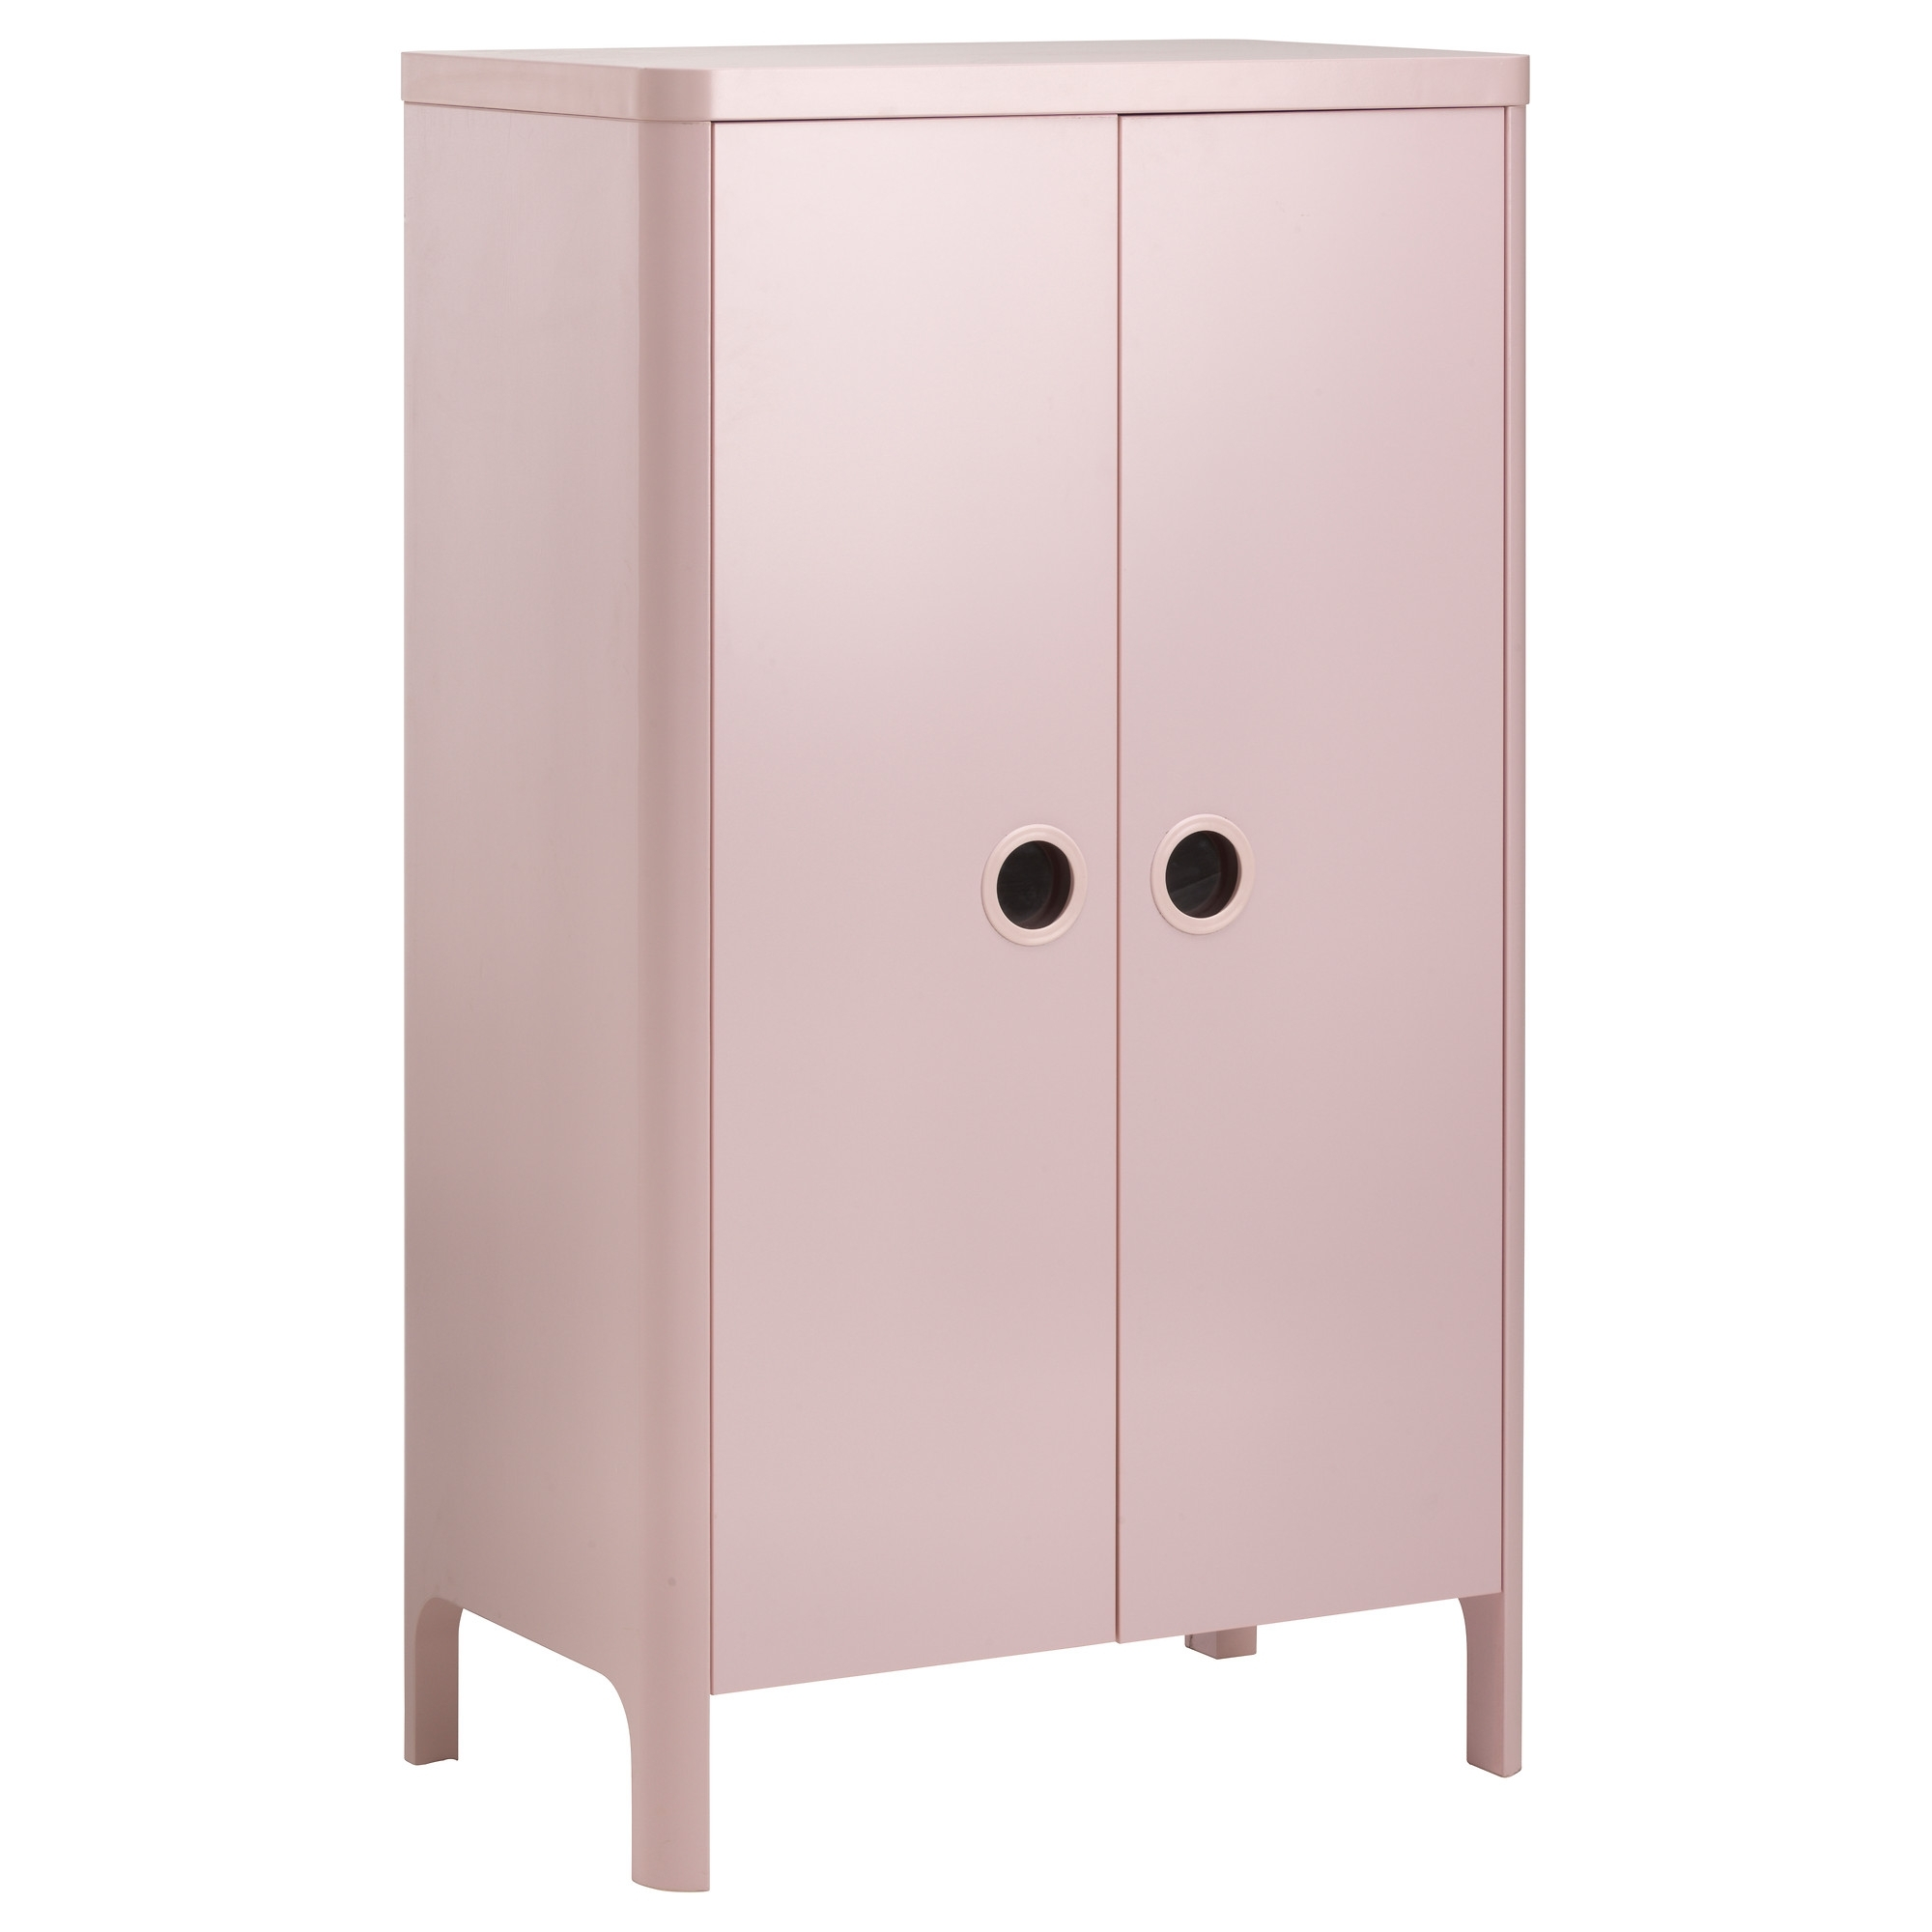 Busunge Wardrobe Light Pink 80X139 Cm – Ikea Regarding Preferred Wardrobes For Baby Clothes (View 1 of 15)